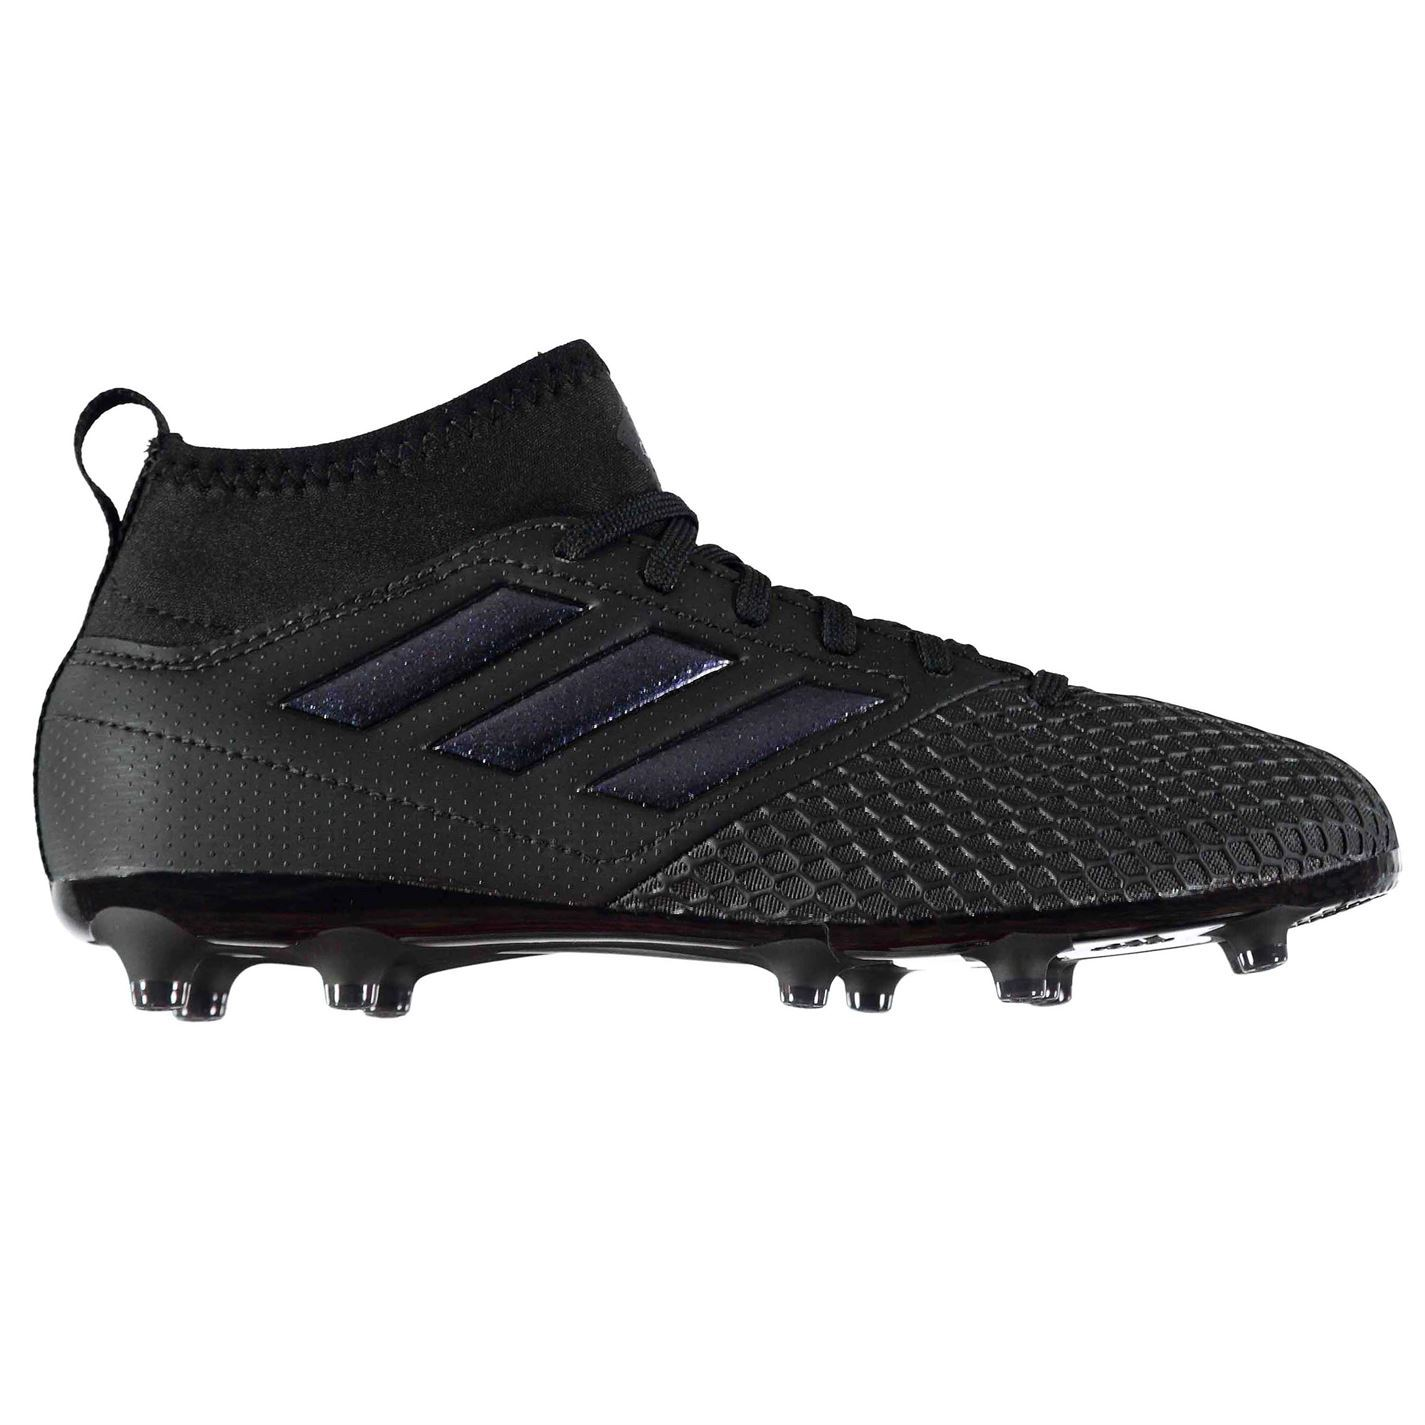 be1533dc0daa ... 50% off adidas ace 17.3 primemesh firm ground football boots juniors  black soccer cleats 97a16